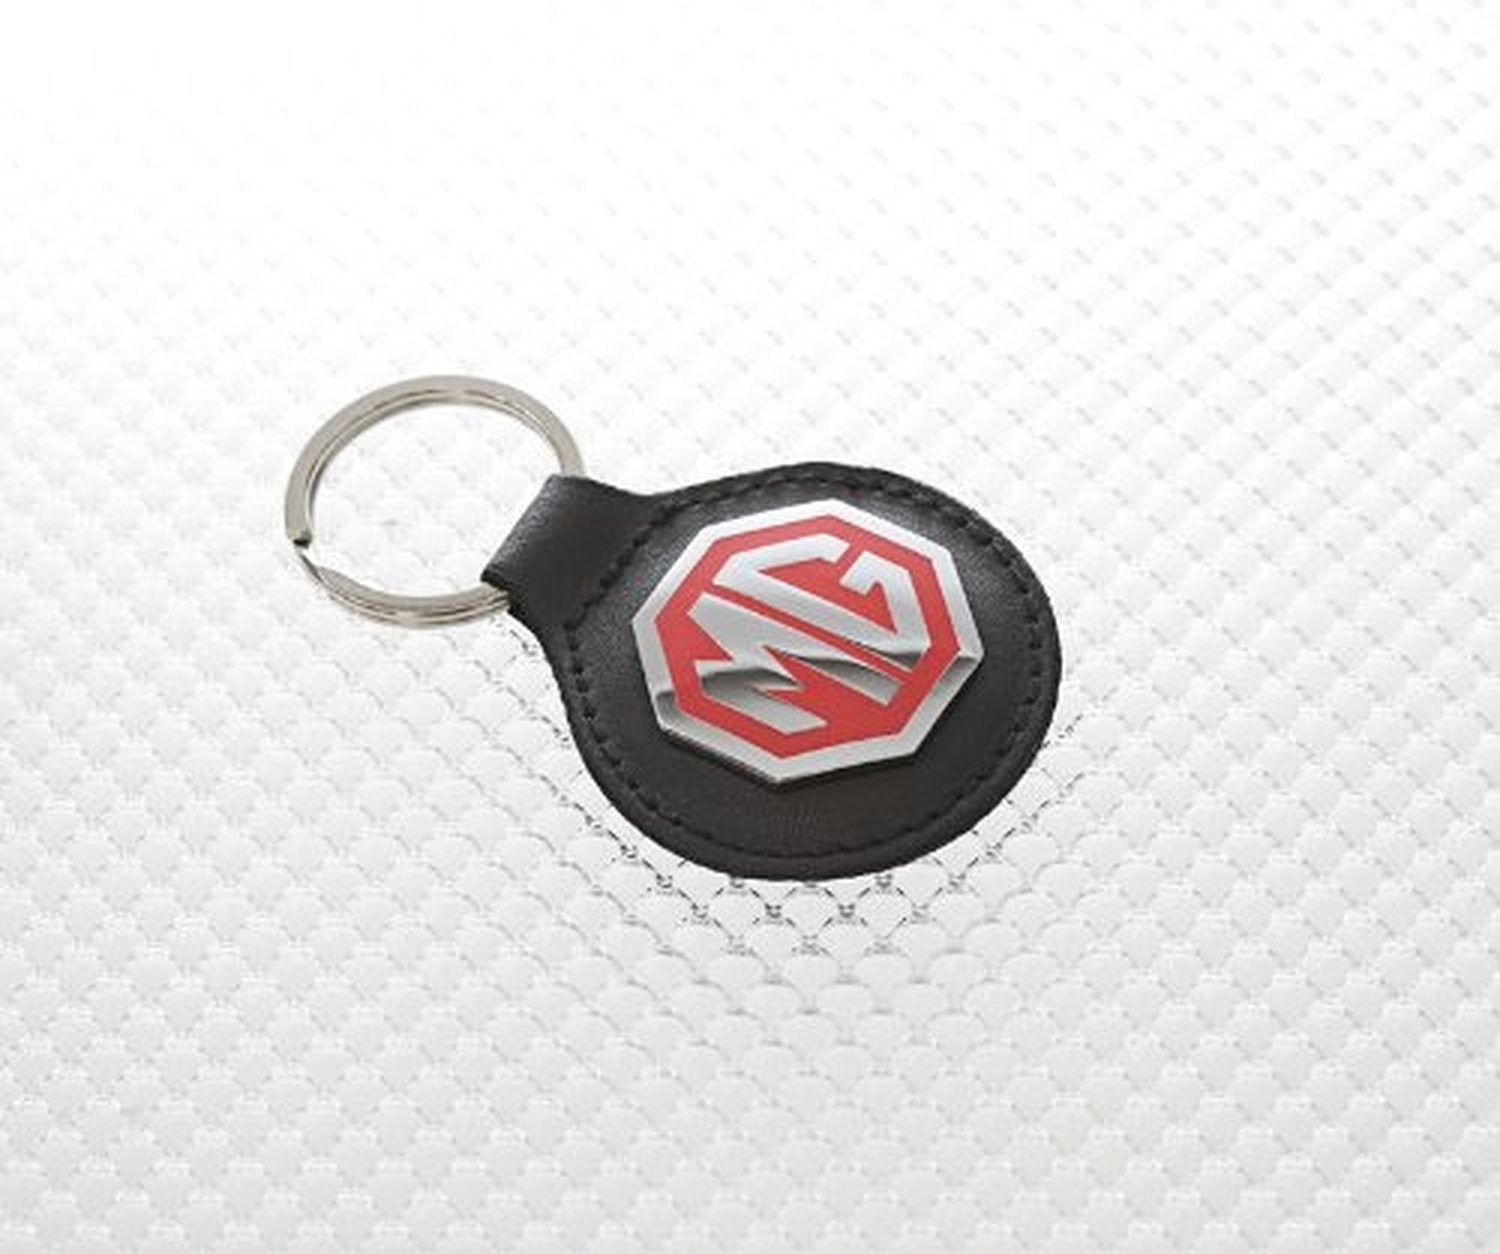 Official Licensed MG Key Ring